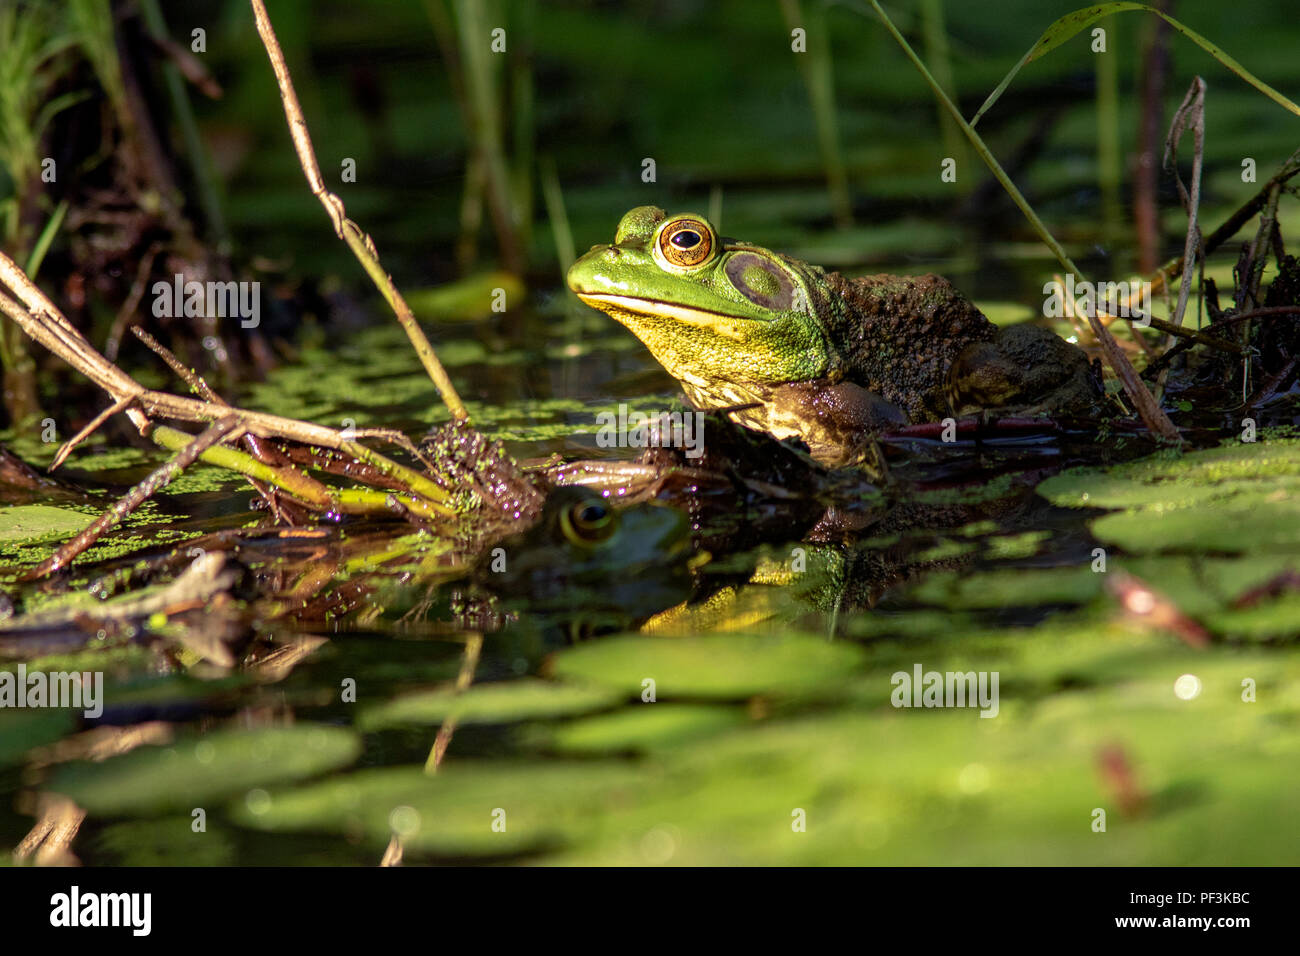 American Bullfrog (Lithobates catesbeianus) - Indian Point Trail - Garden of the Gods, Shawnee National Forest, Illinois, USA - Stock Image